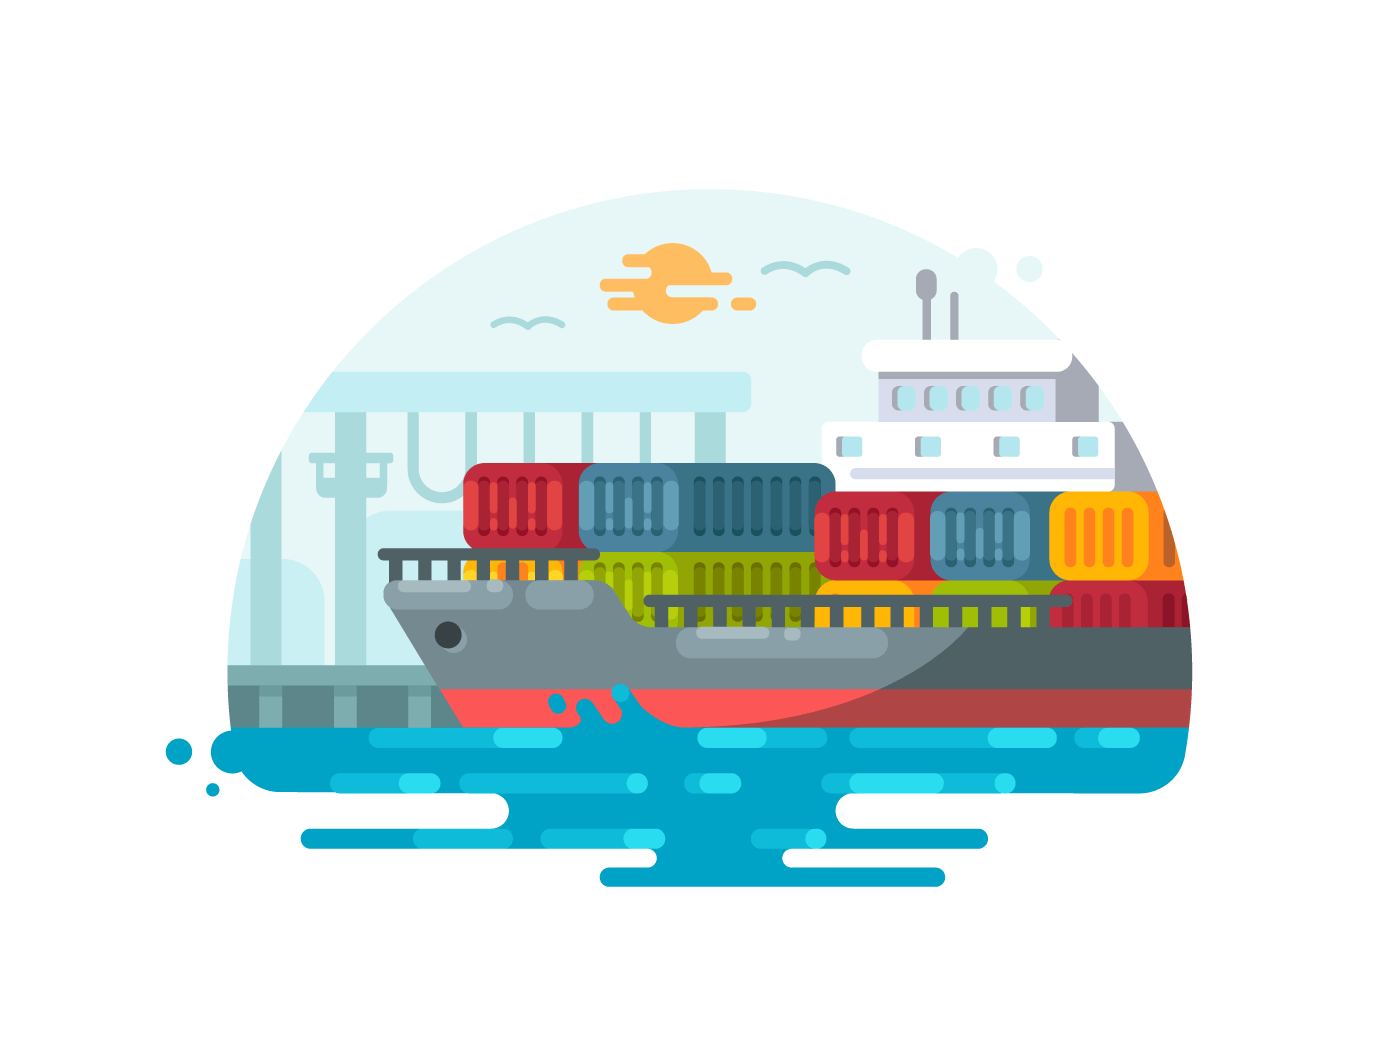 Maritime logistics and transportation illustration